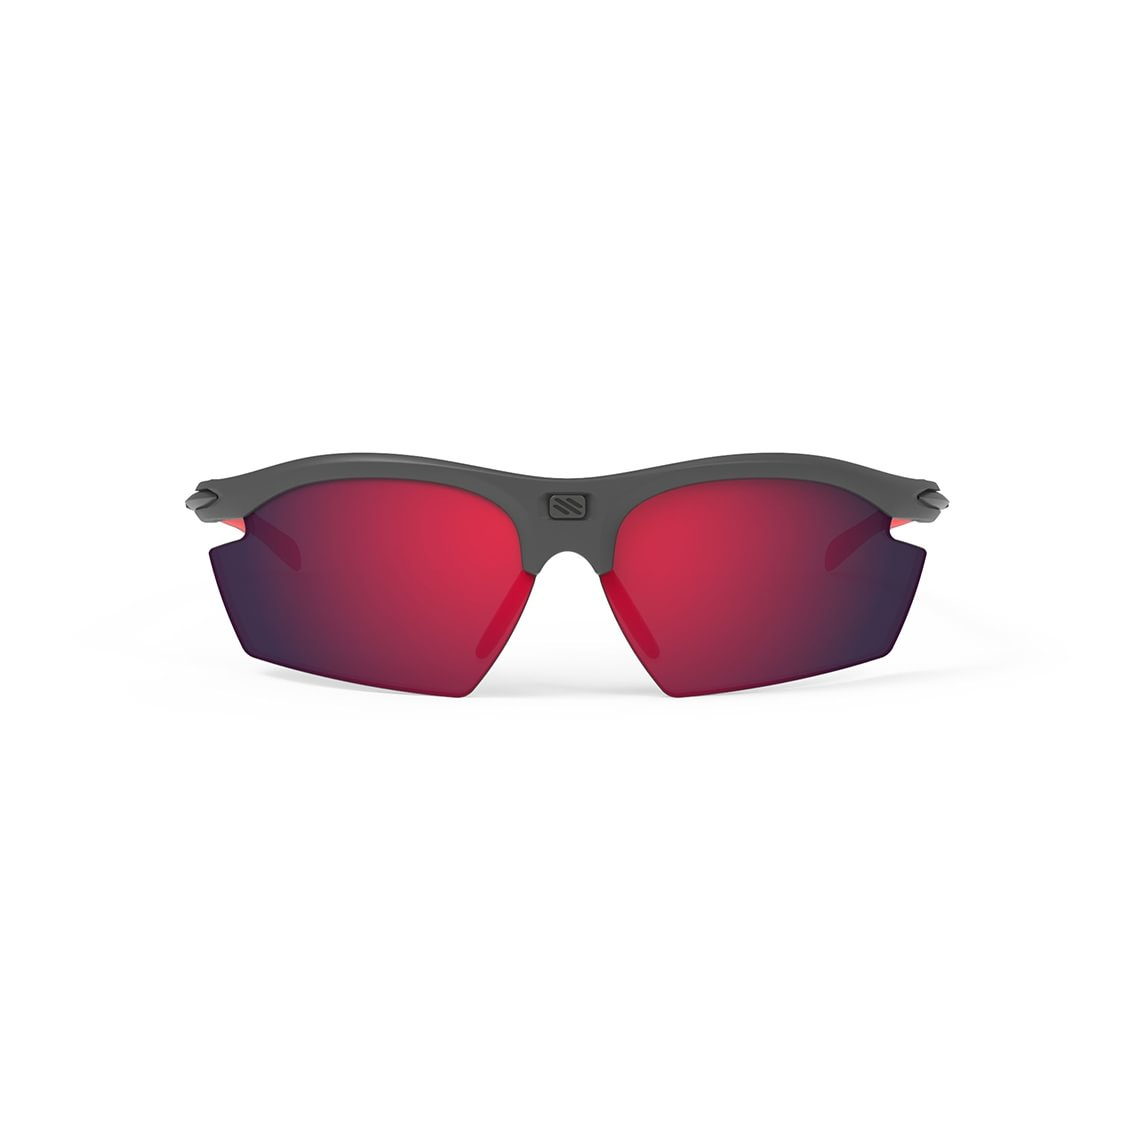 Rudy Project Rydon GRAPHITE - MLS RED SP533898-0001